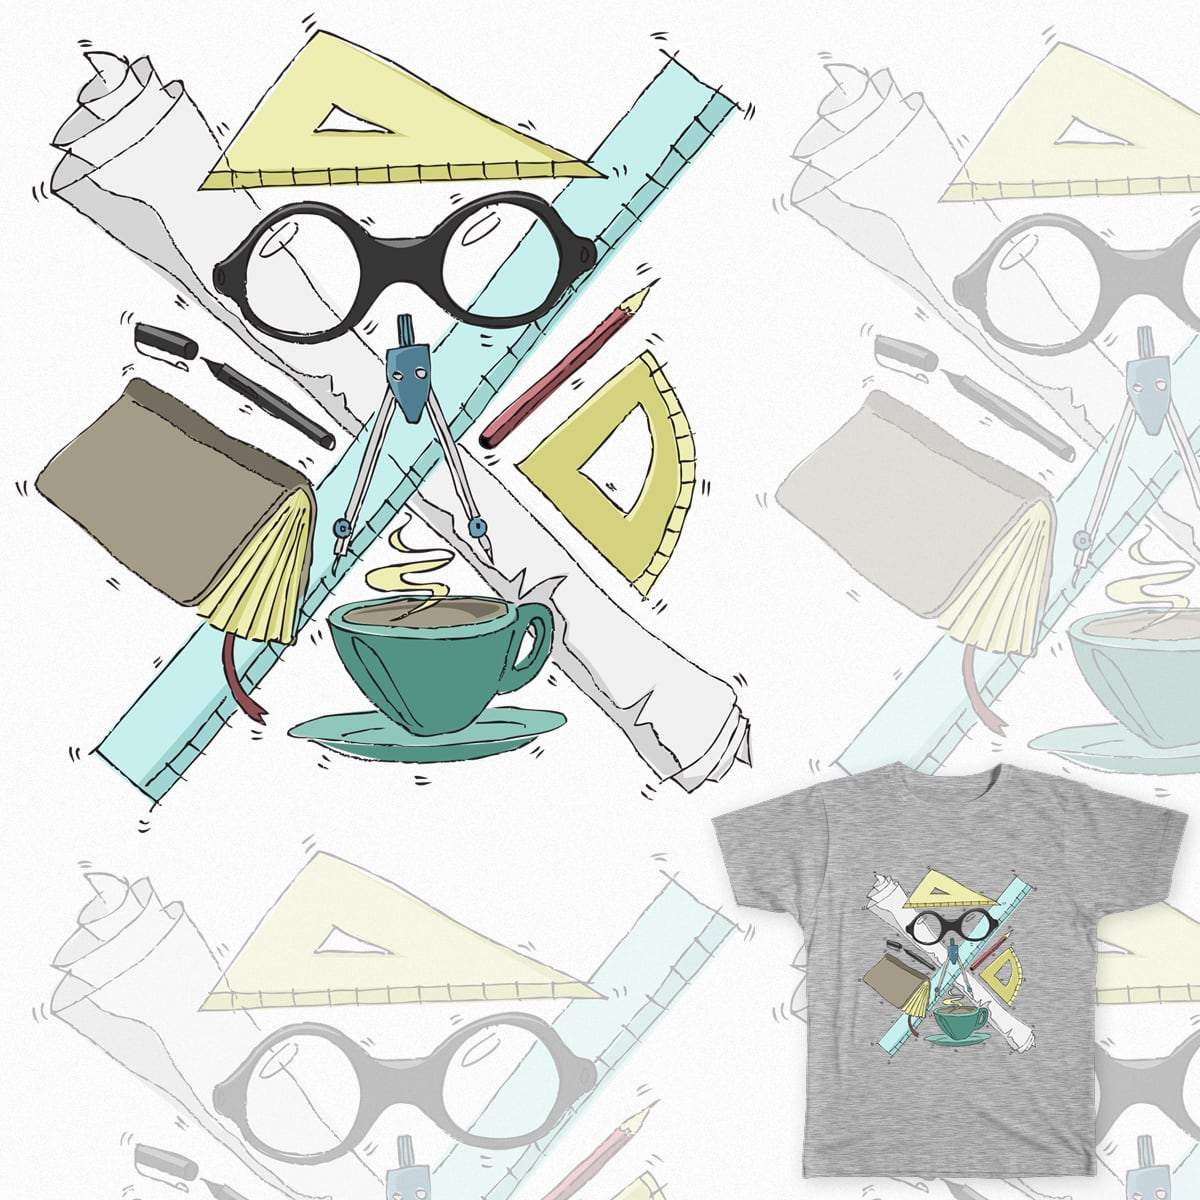 The Essentials by ByNate on Threadless